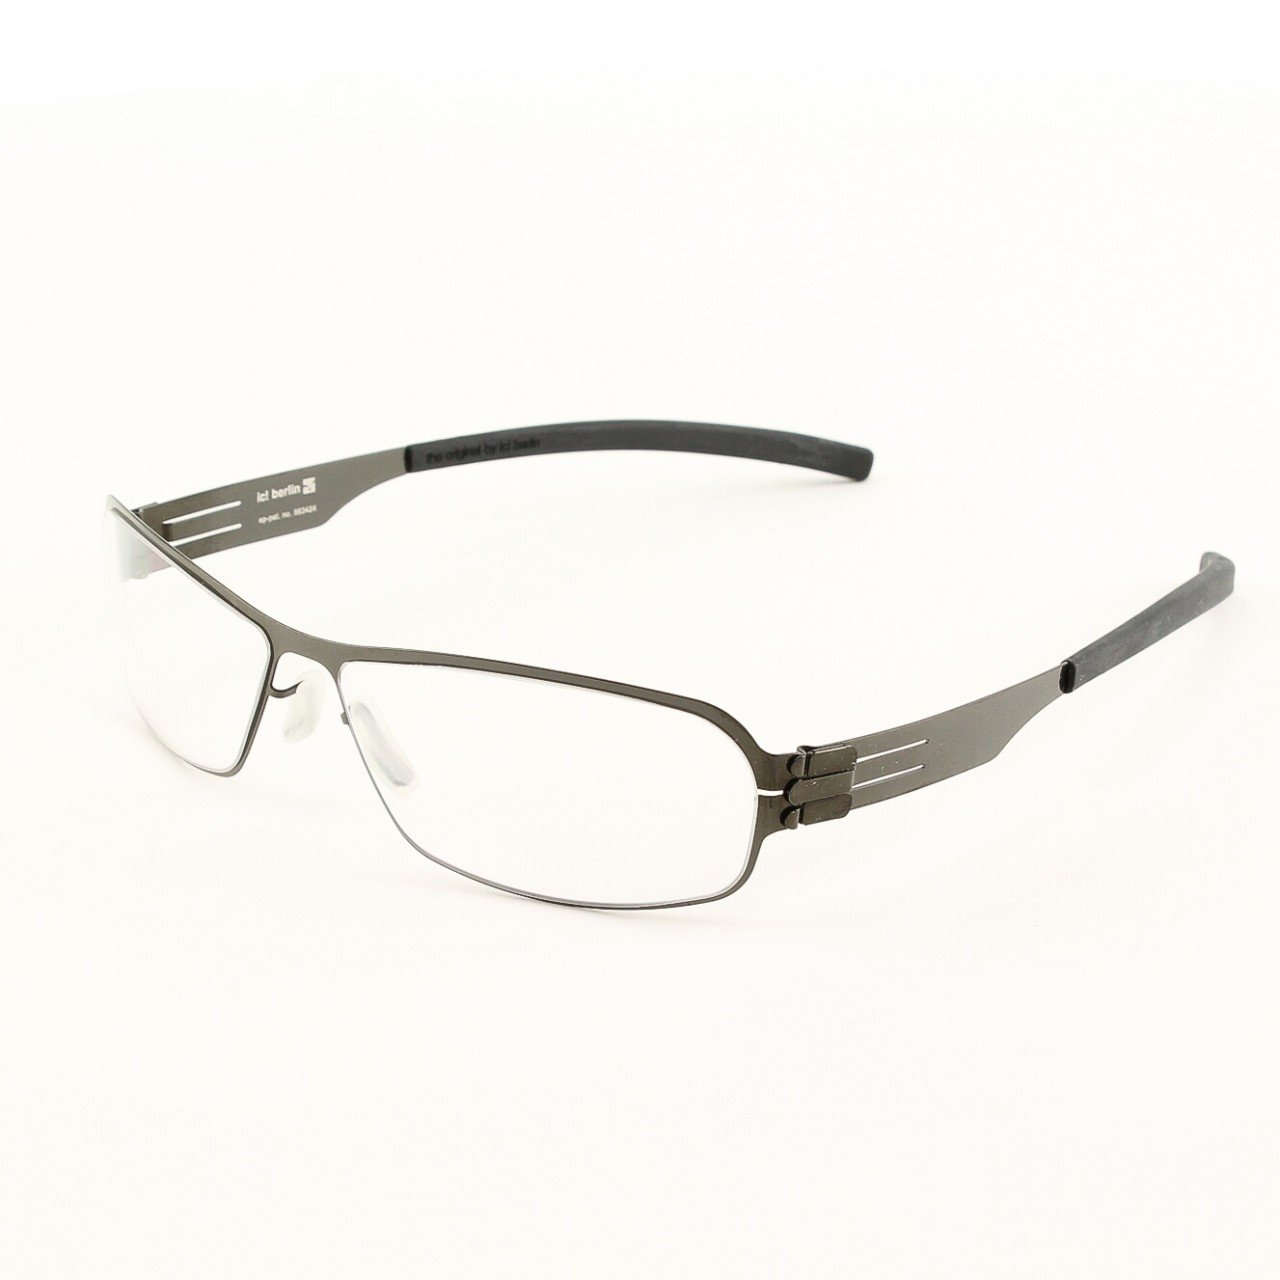 ic! Berlin Ye G. Eyeglasses Col. Gun Metal with Clear Lenses